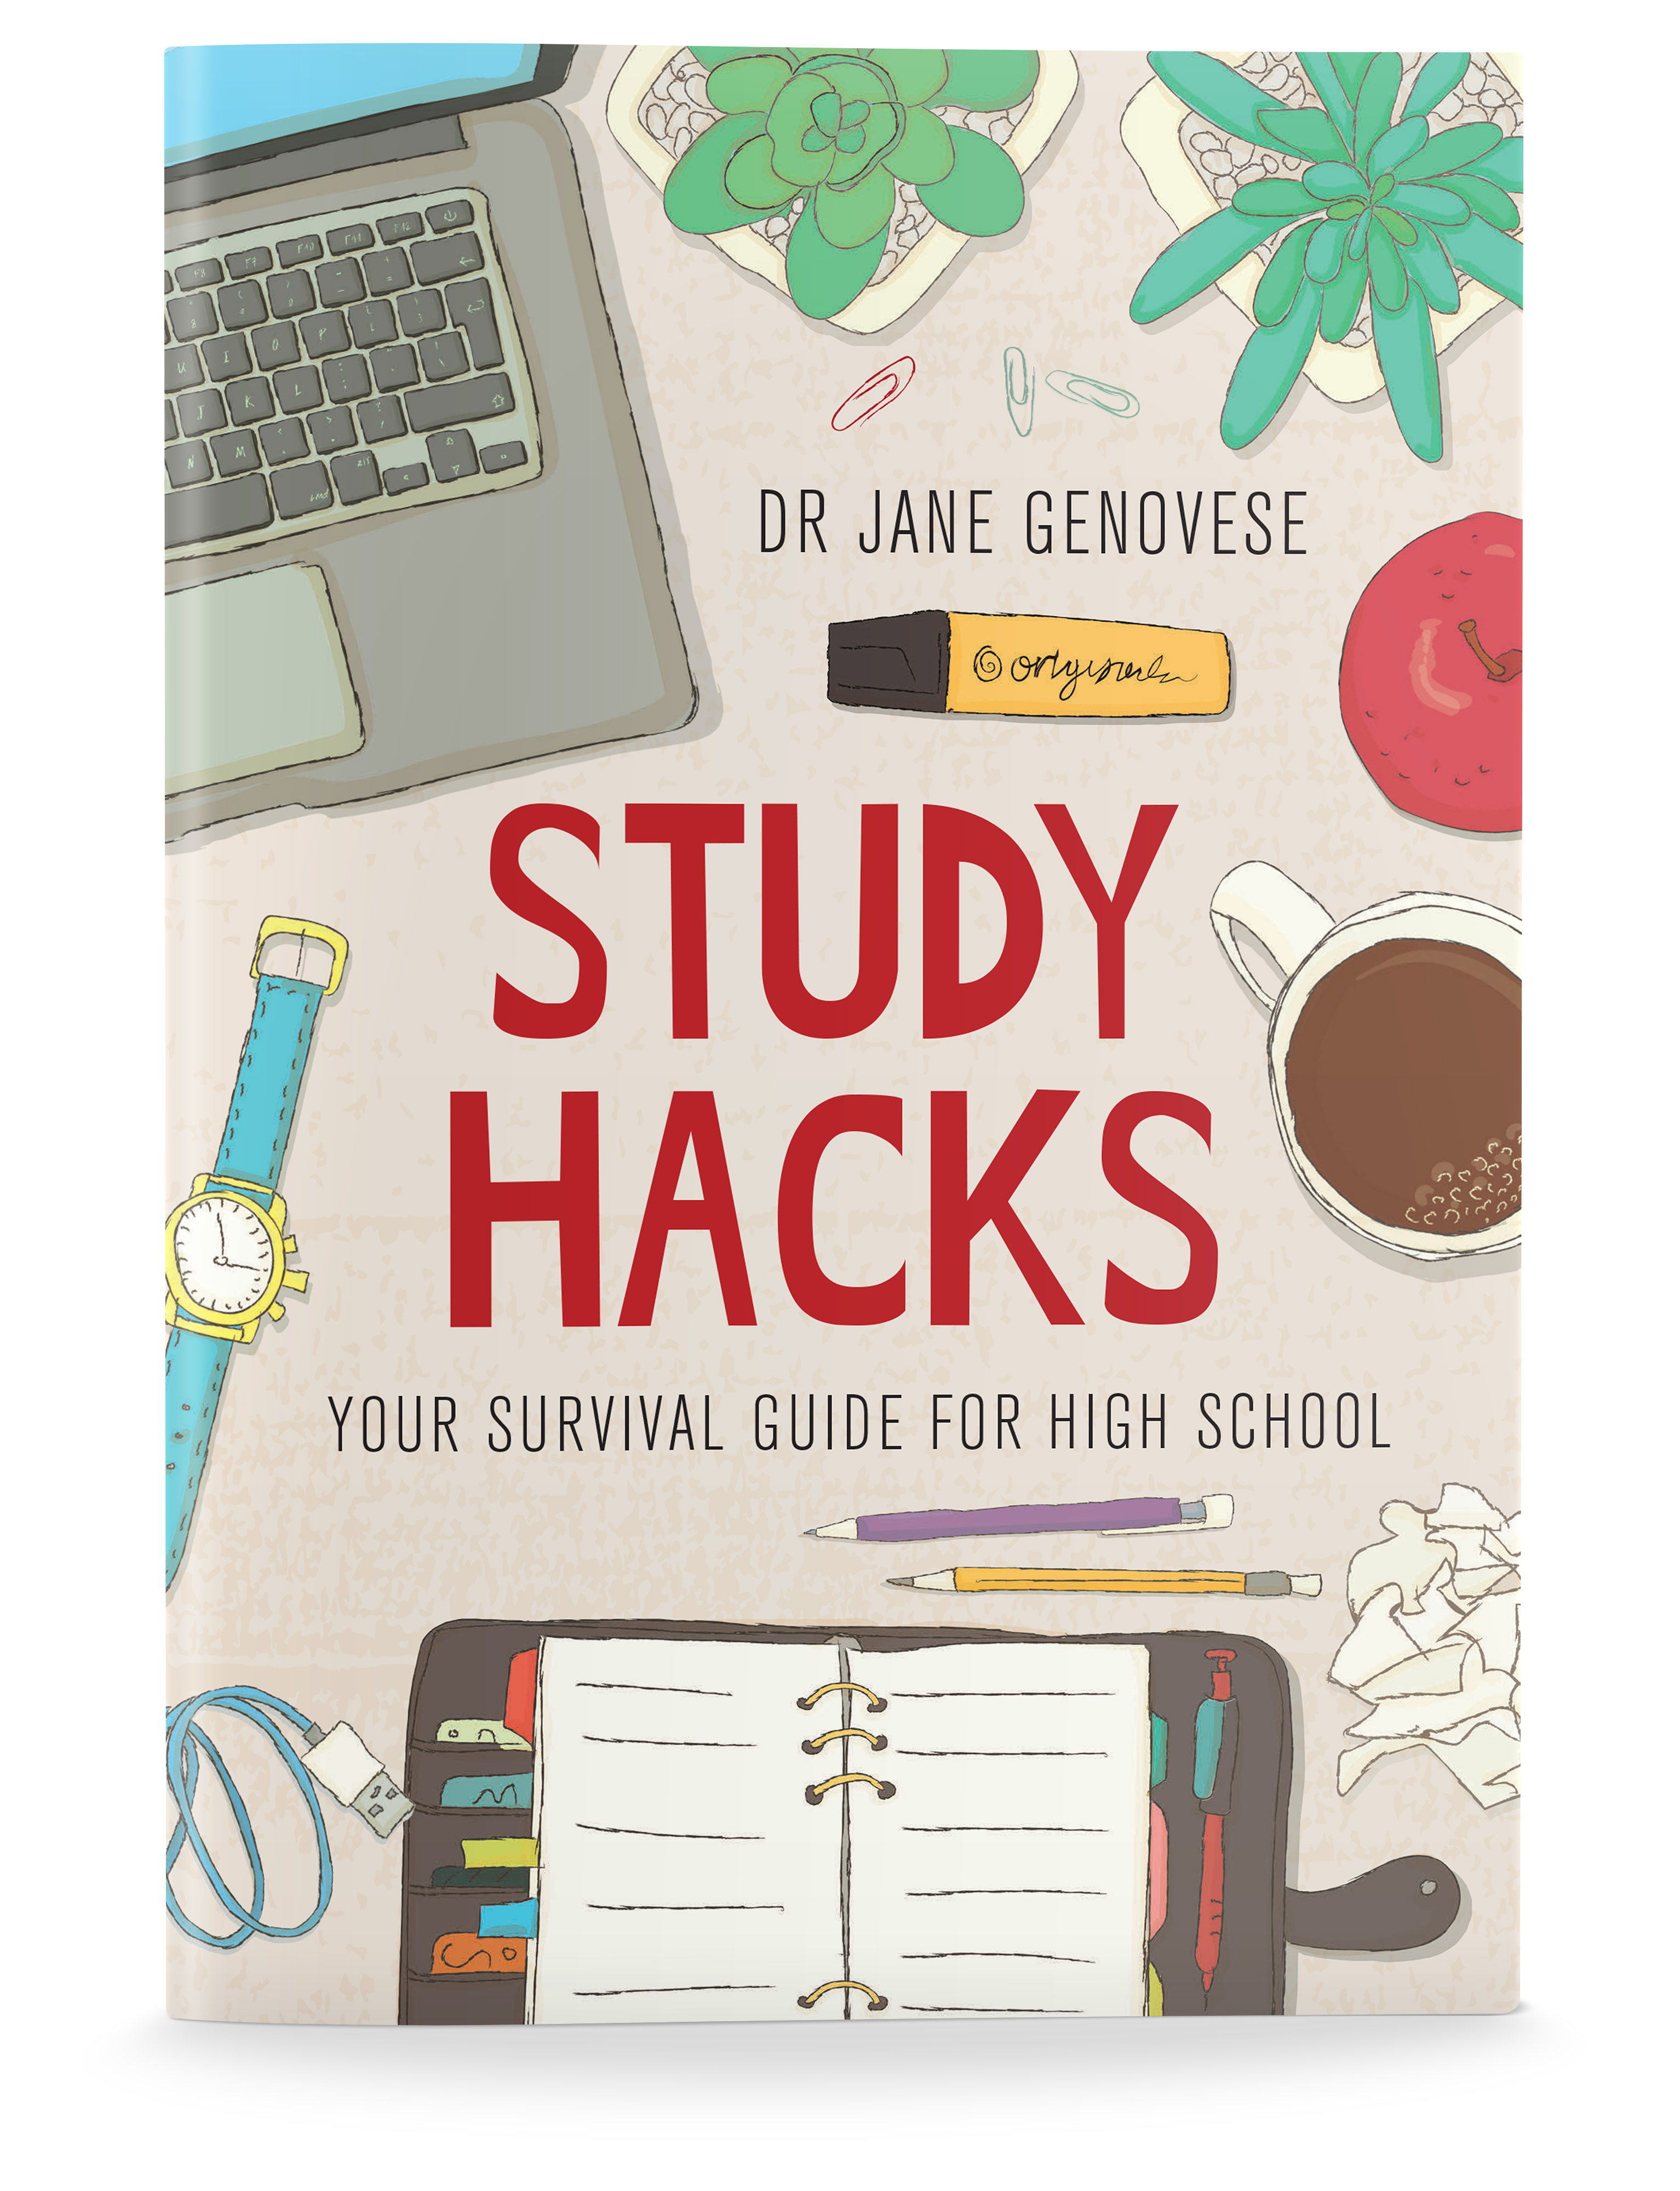 NEW RELEASE- Study Hacks: Your Survival Guide for High School